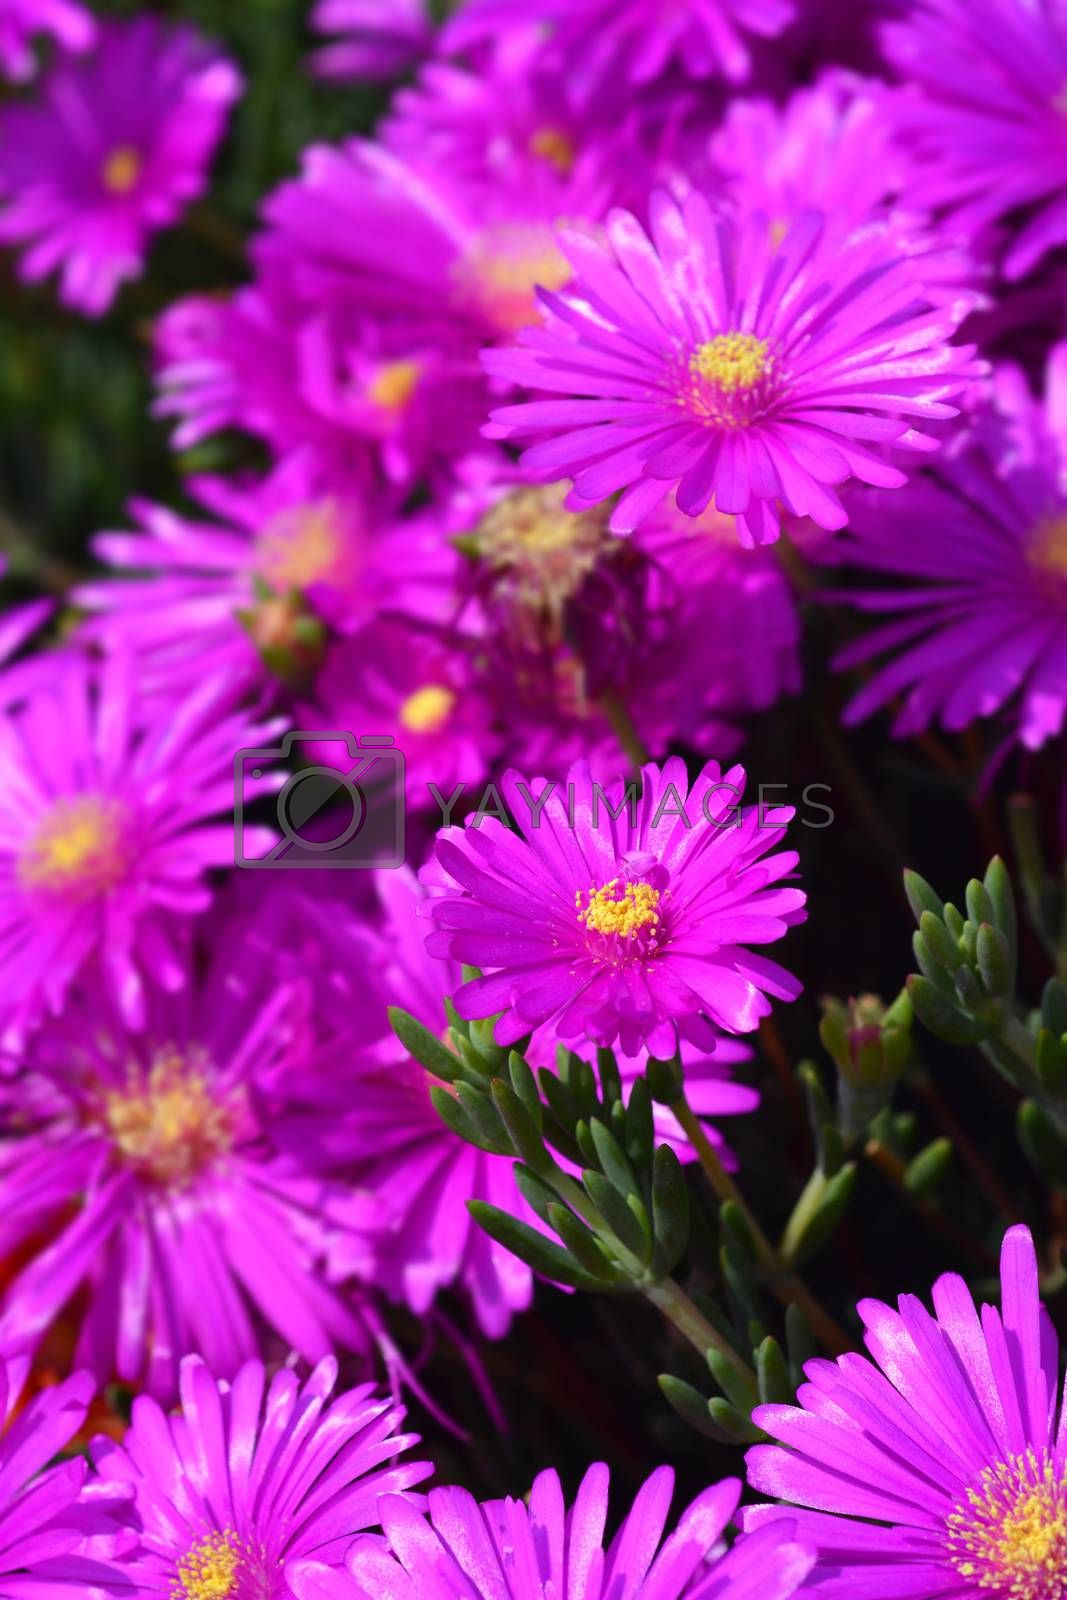 Common ice plant by nahhan